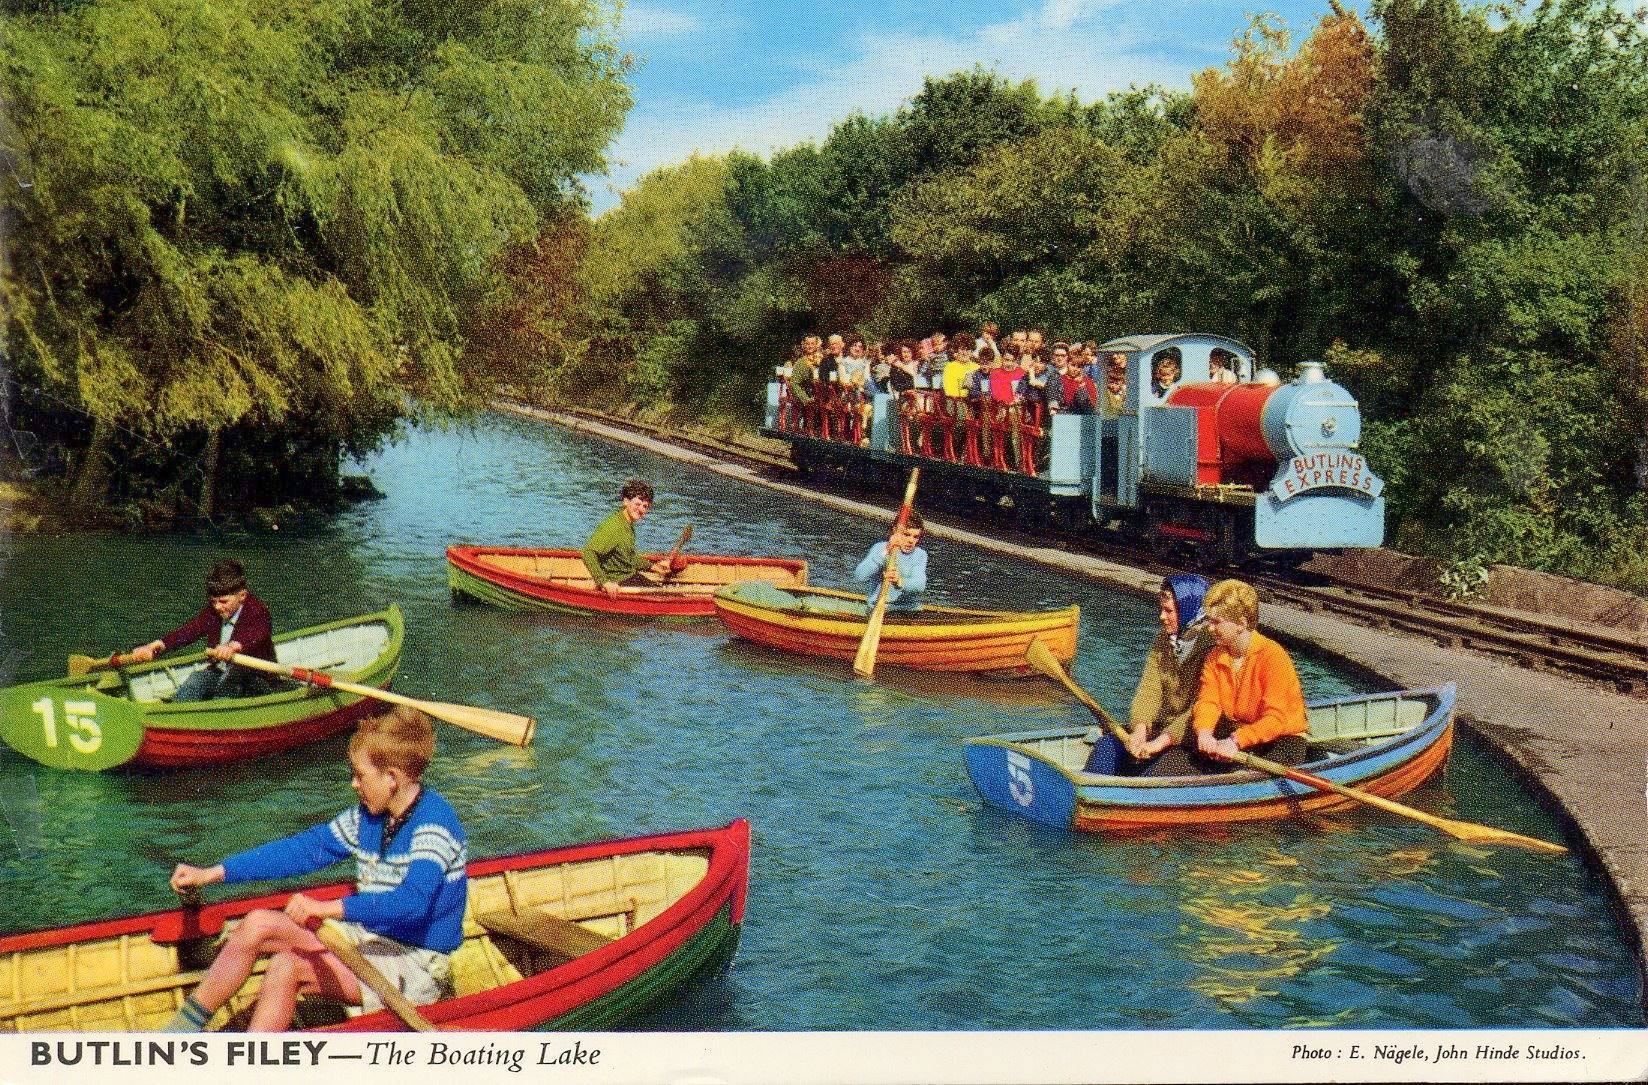 Butlins Filey - The Boating Lake & Train (postcard, late 1960s)